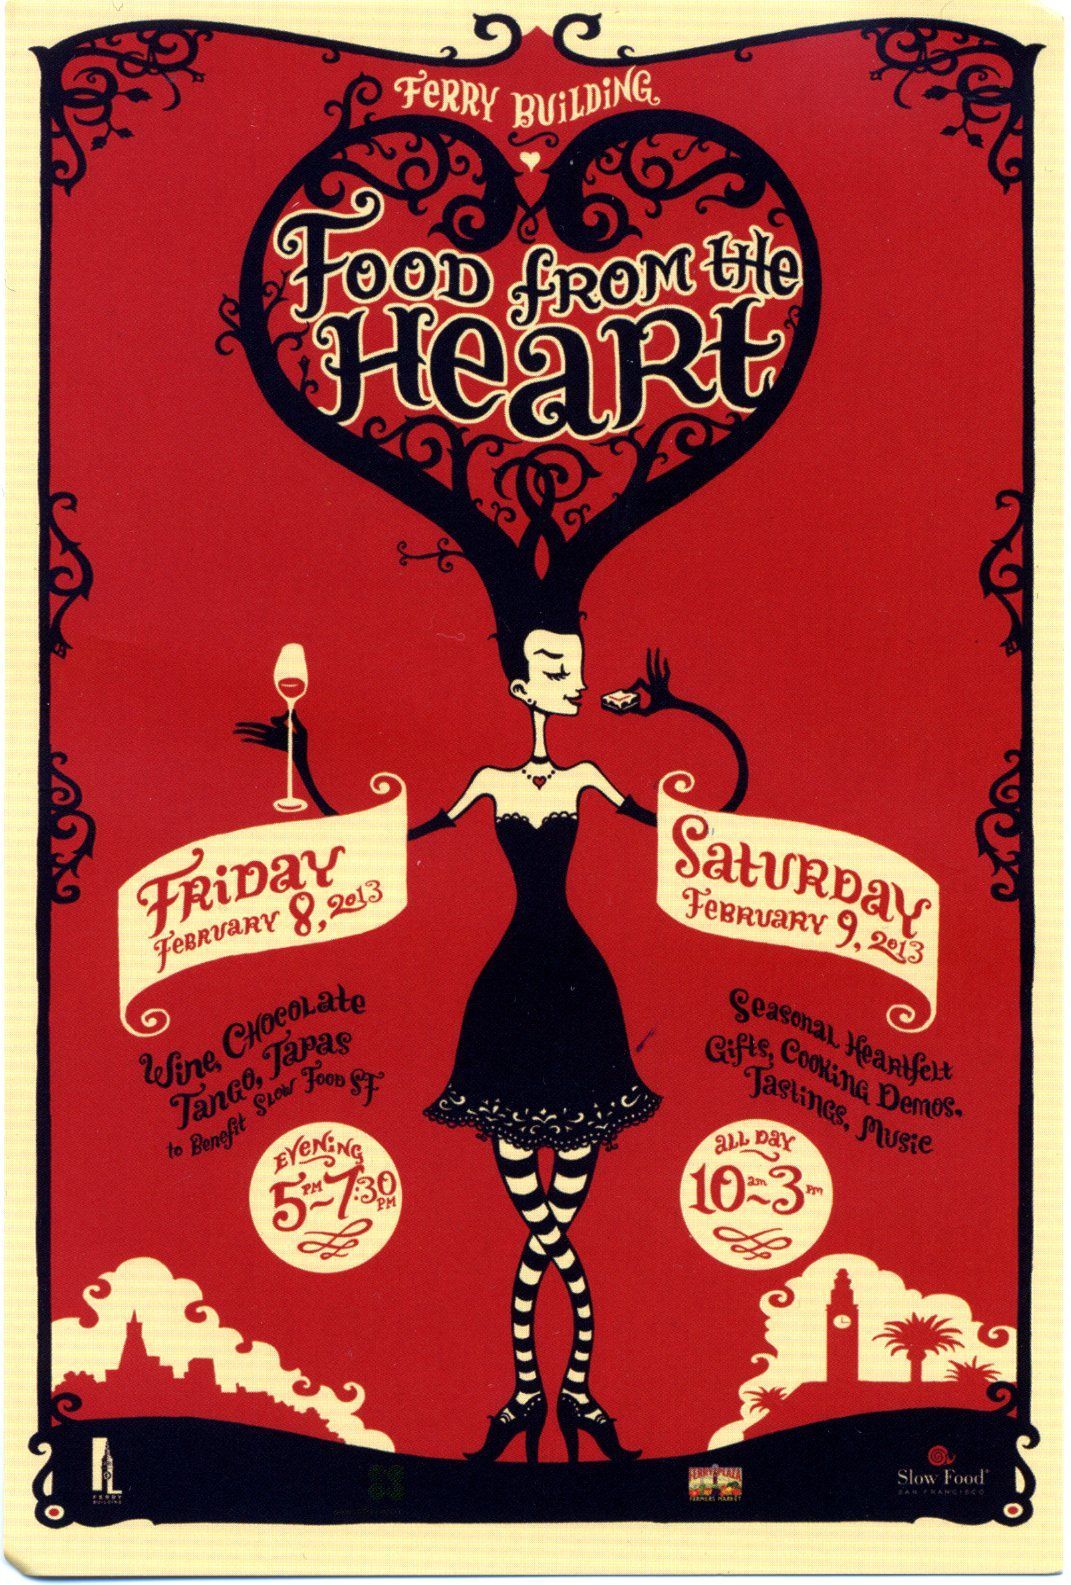 Food From The Heart - Local Event http://www.waldorfpropertysearch.com/